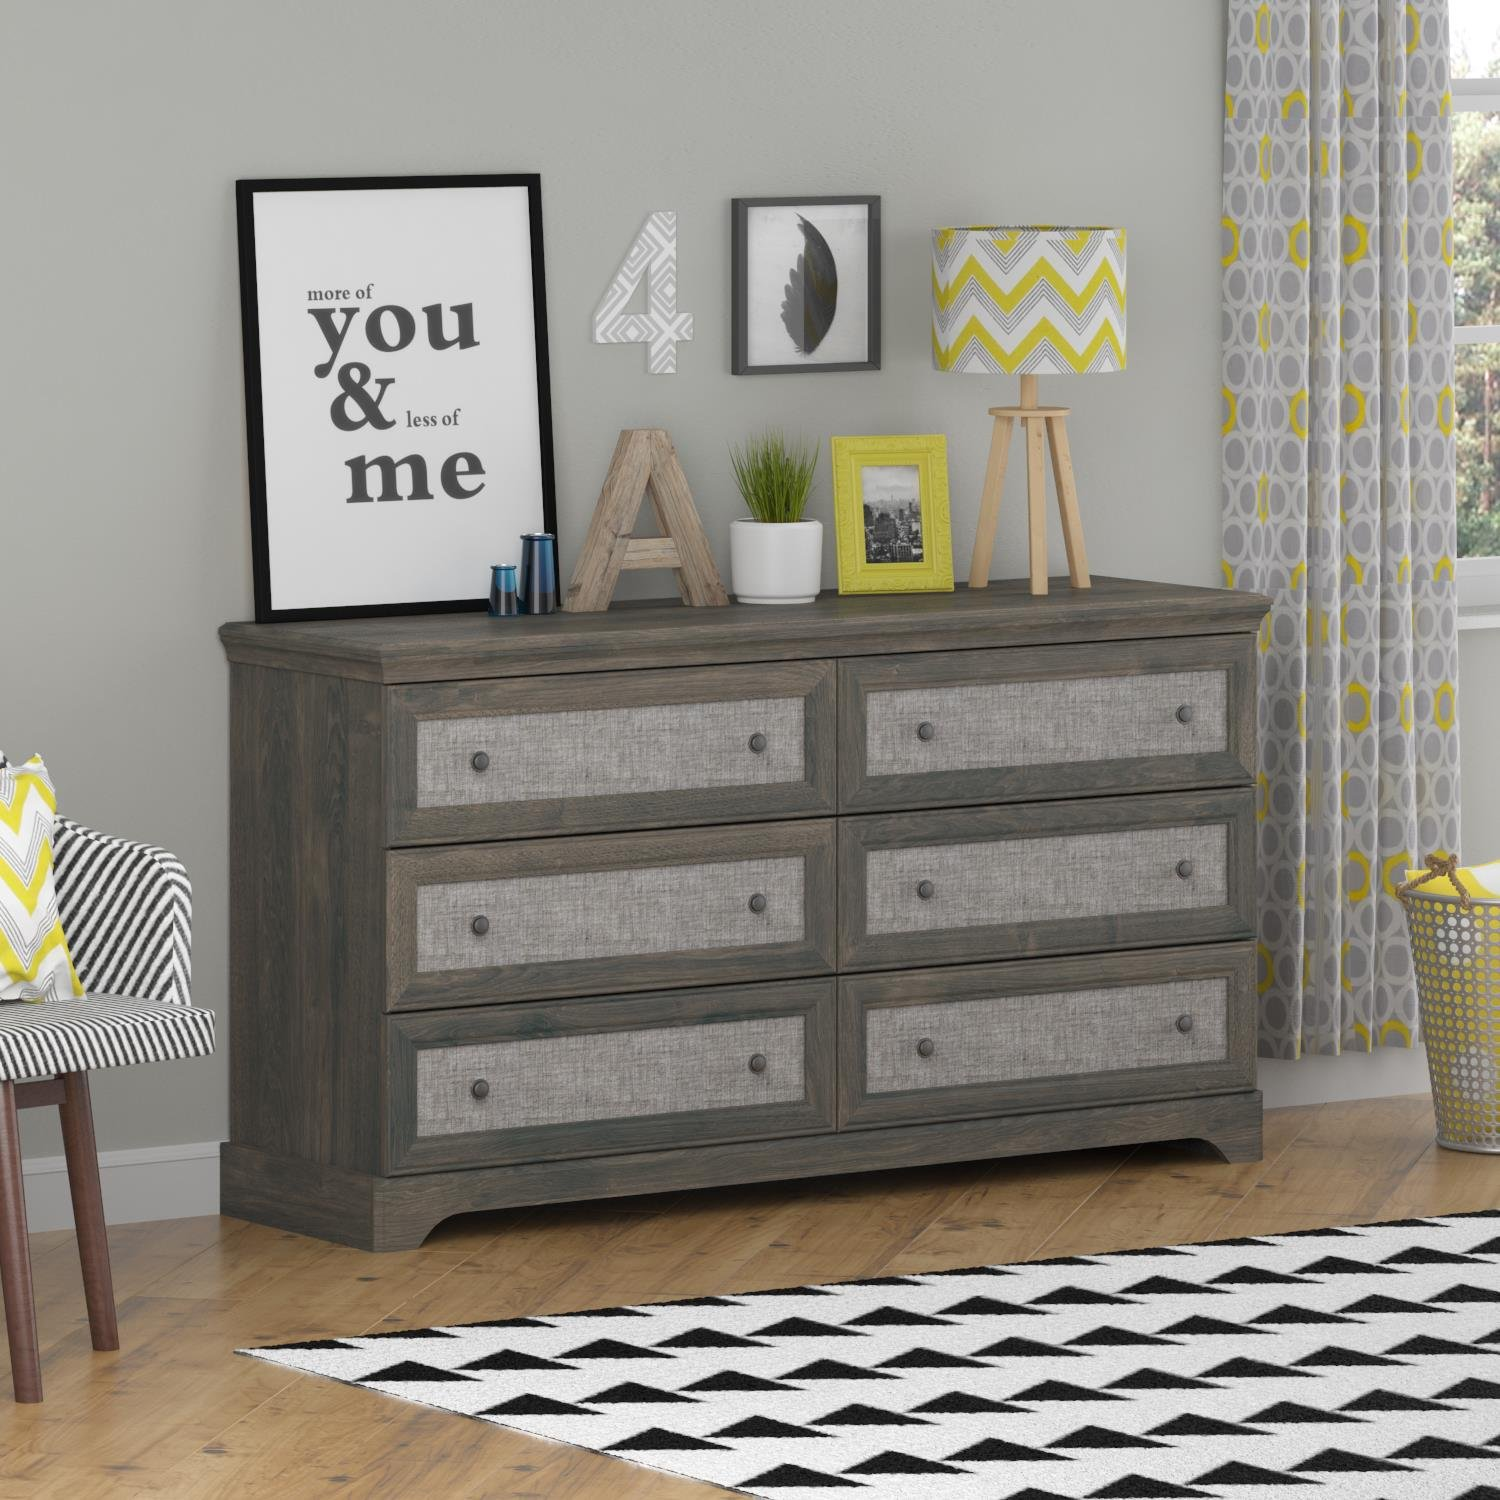 image colors over dressers cottagetown drs cottage dresser roll br town gray product to zoom